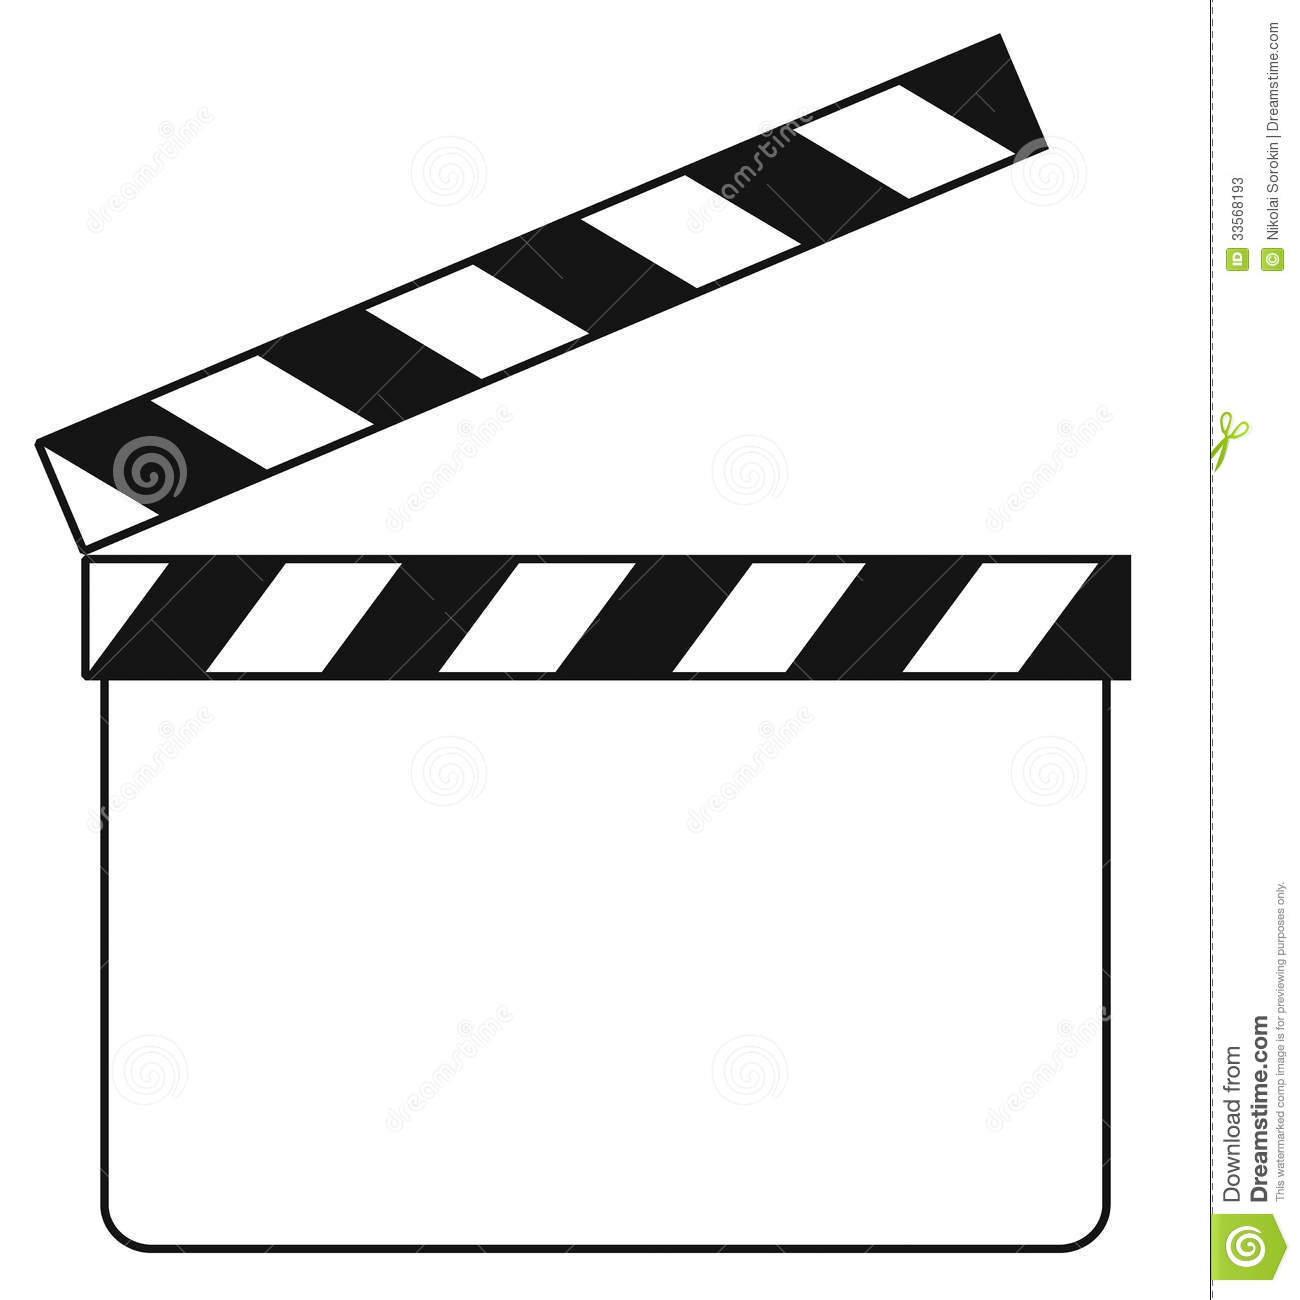 Blank Clapboard Illustration Stock Photos Image 33568193